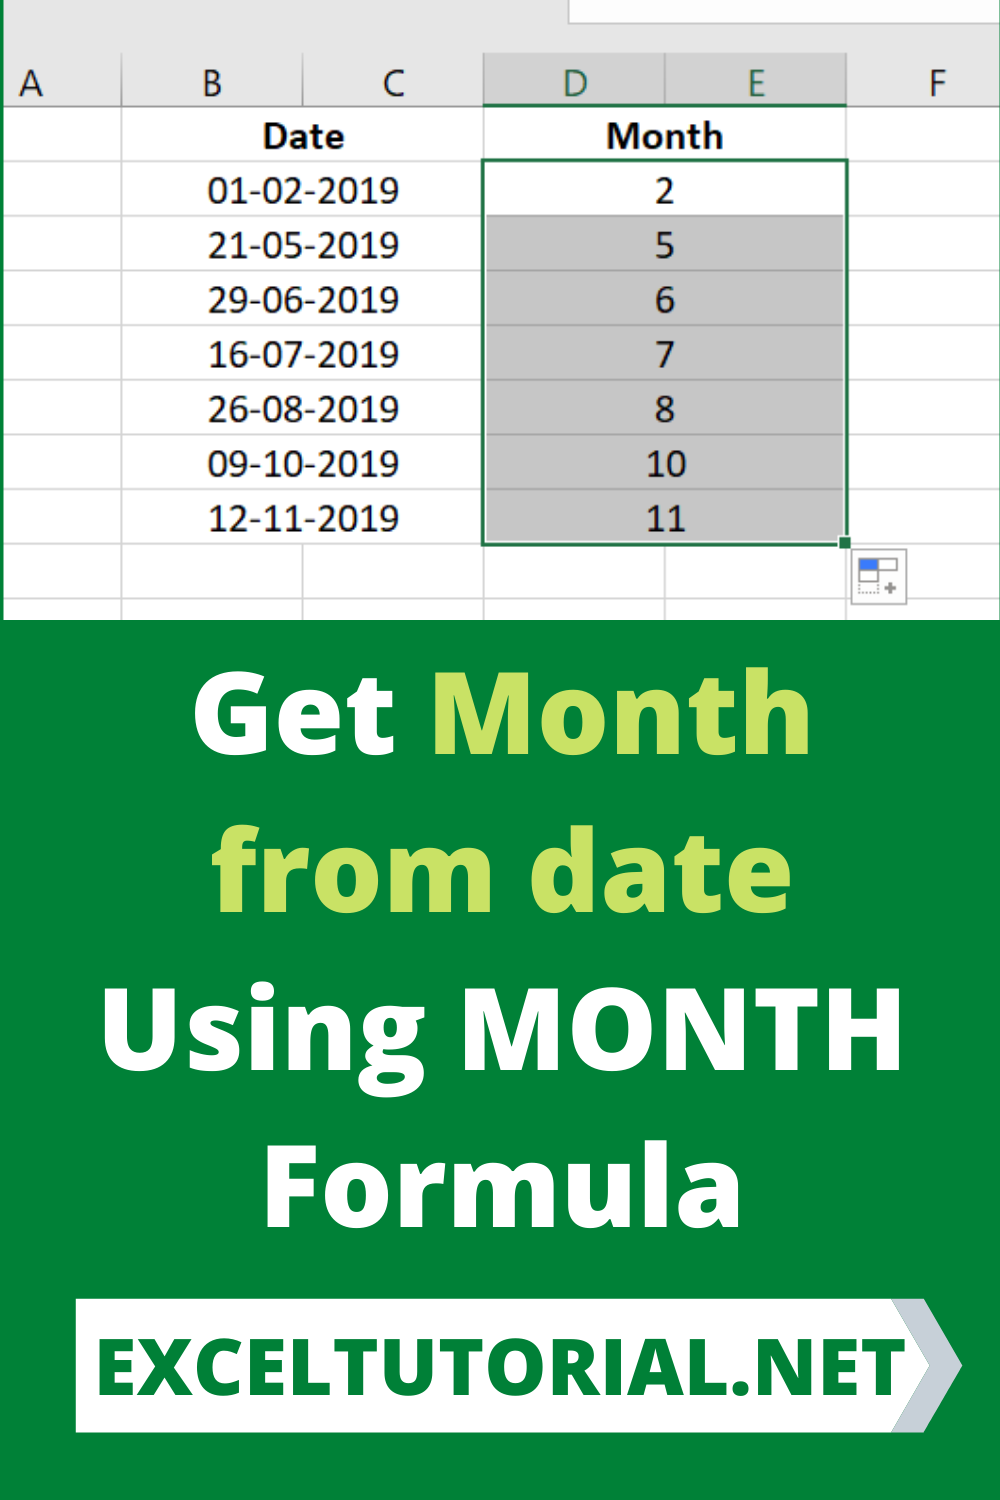 Get Month From Date Using Month Formula Excel Microsoftexcel Exceltutorial Exceltutorials Exceltut In 2021 Excel Tutorials Microsoft Excel Tutorial Excel Formula